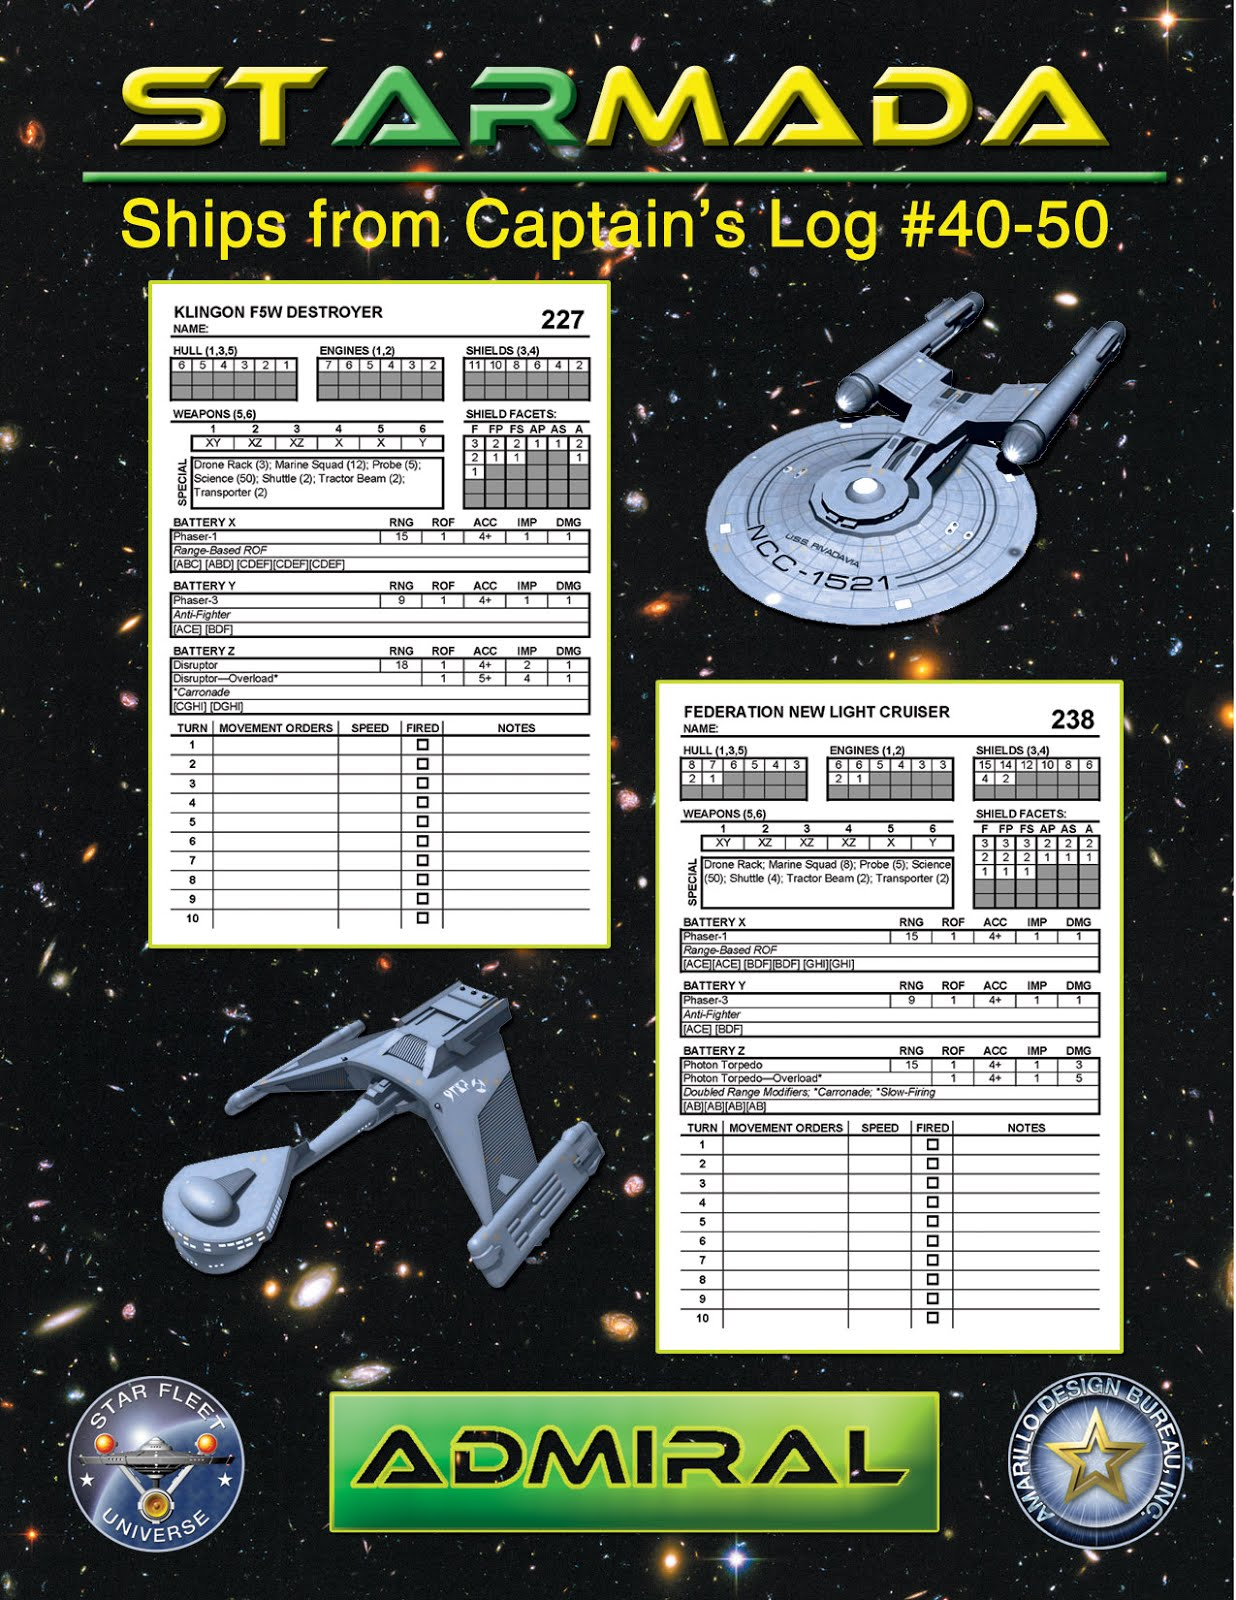 Federation commander june 2016 those are only available as ebooks compilation products from captains log such as the scenario log for federation commander and the compendiums for fandeluxe Images